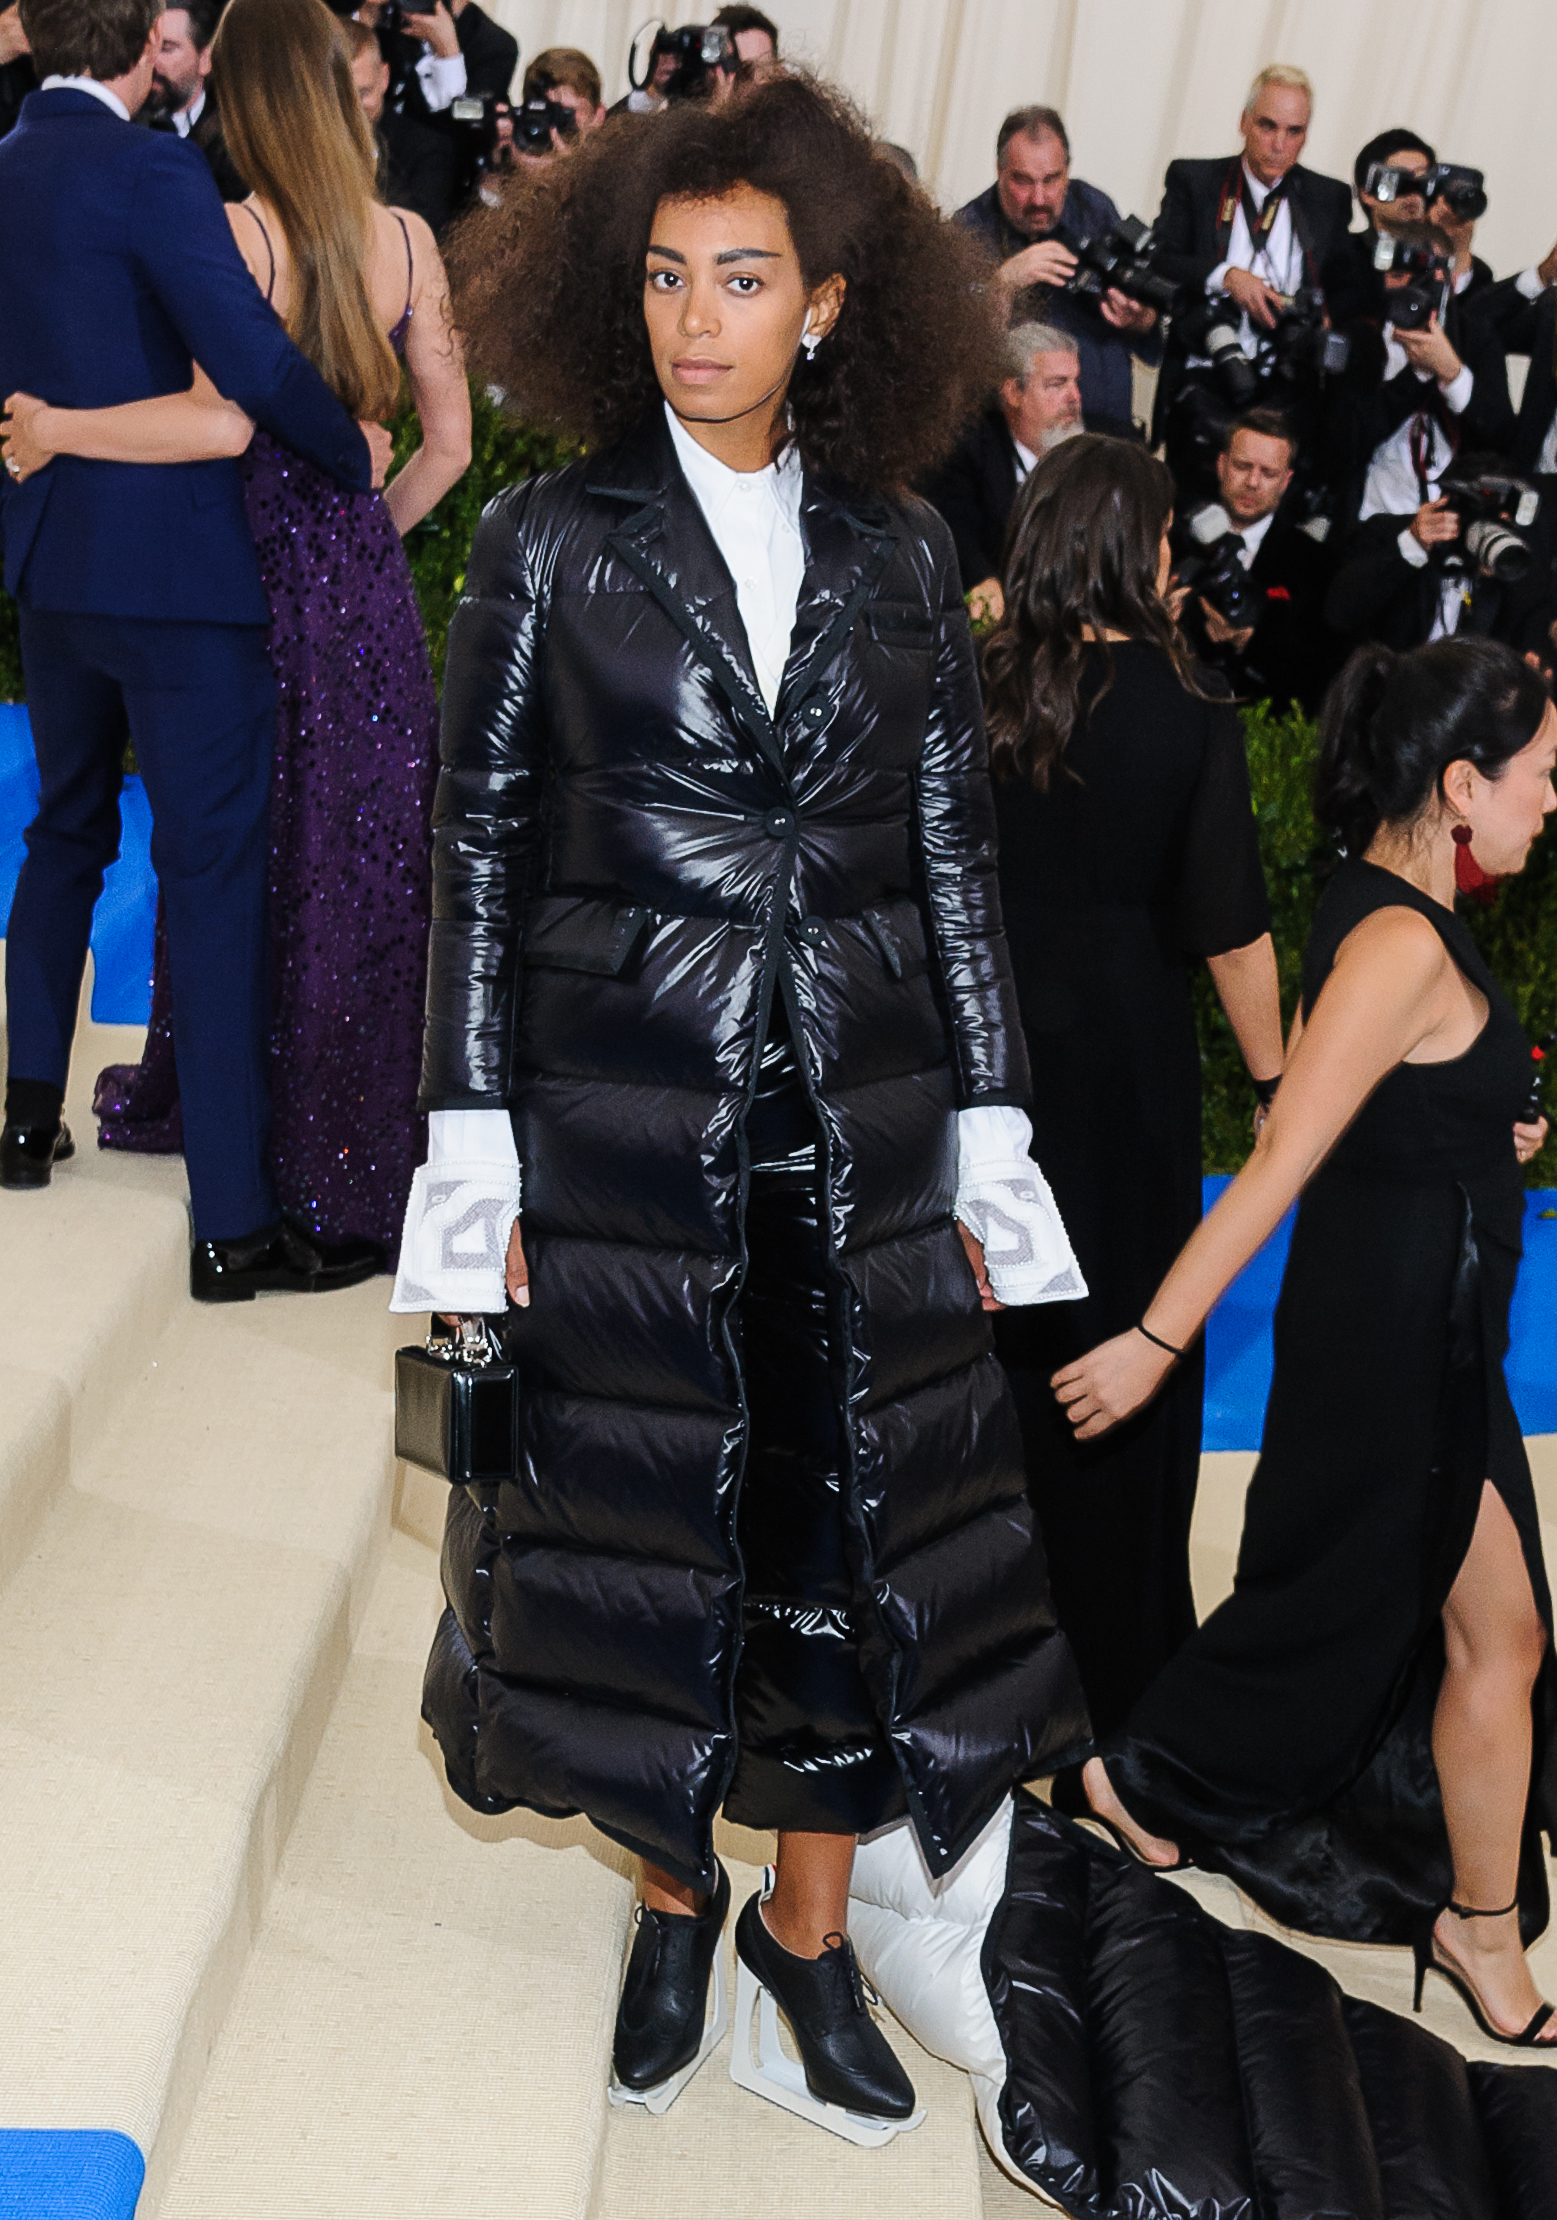 The Met Gala 2017 - Arrivals                                    Featuring: Solange Knowles                  Where: New York, New York, United States                  When: 01 May 2017                  Credit: WENN.com